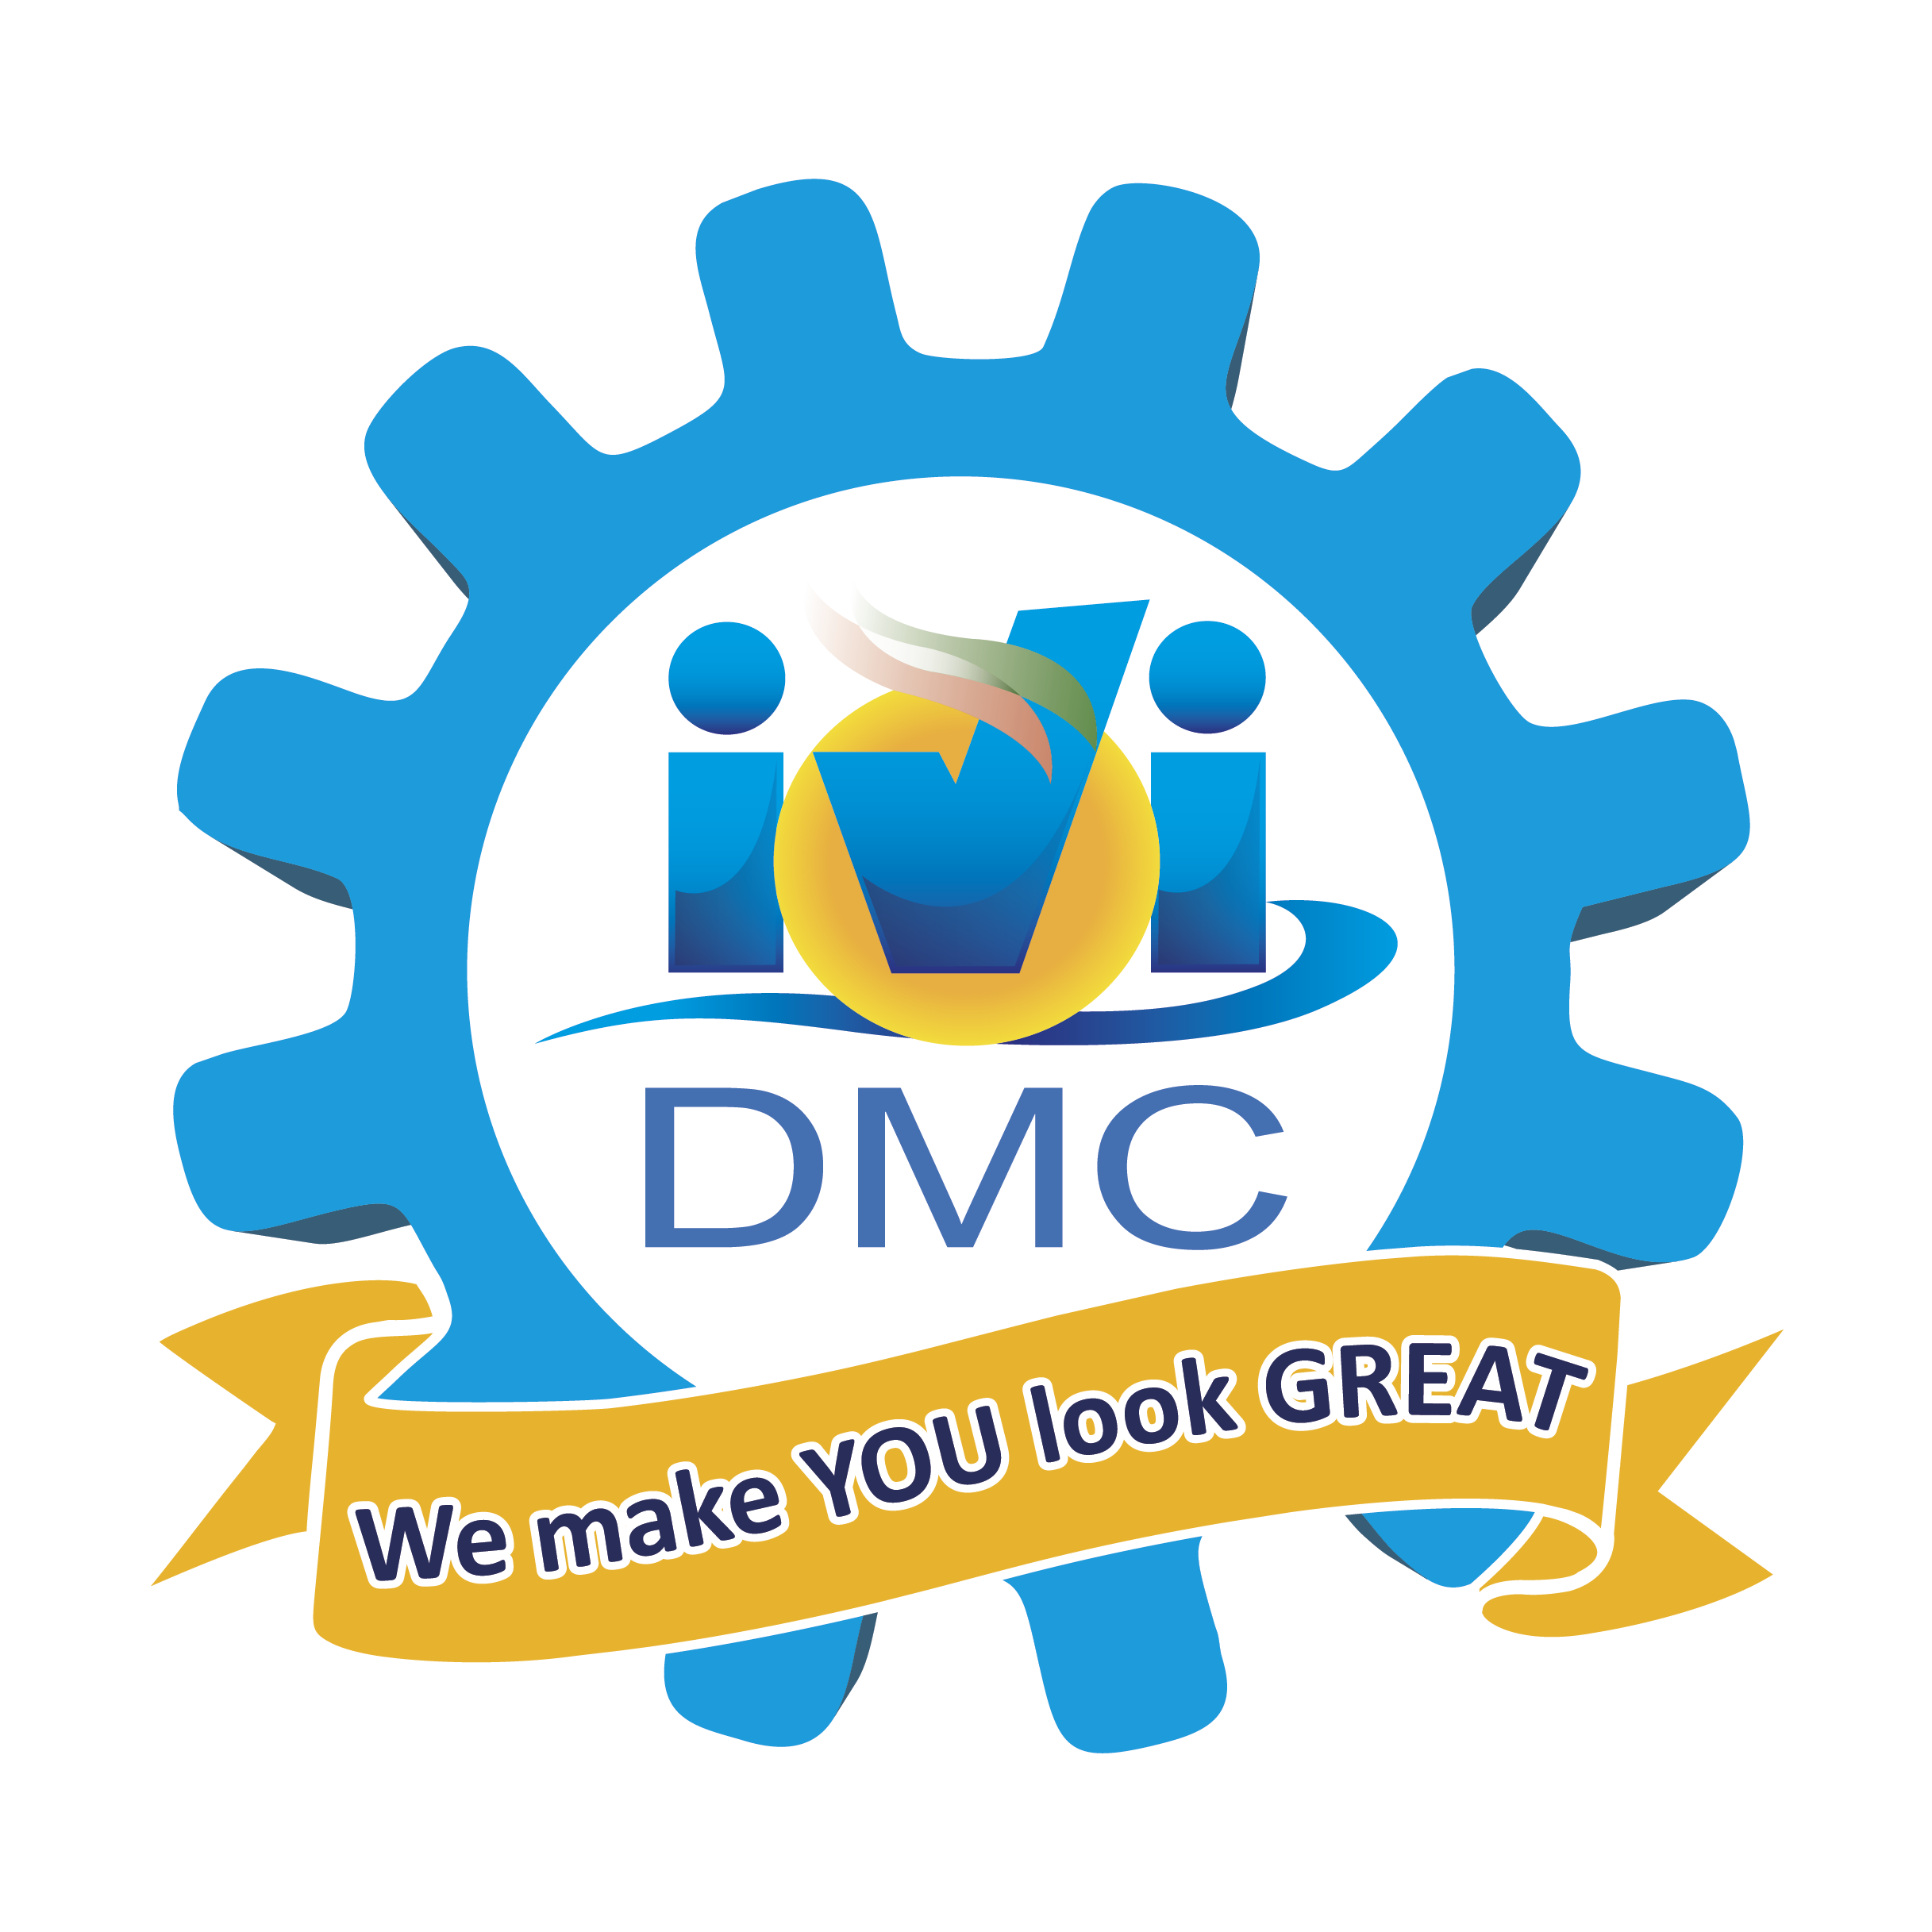 IVI DMC Enterprises